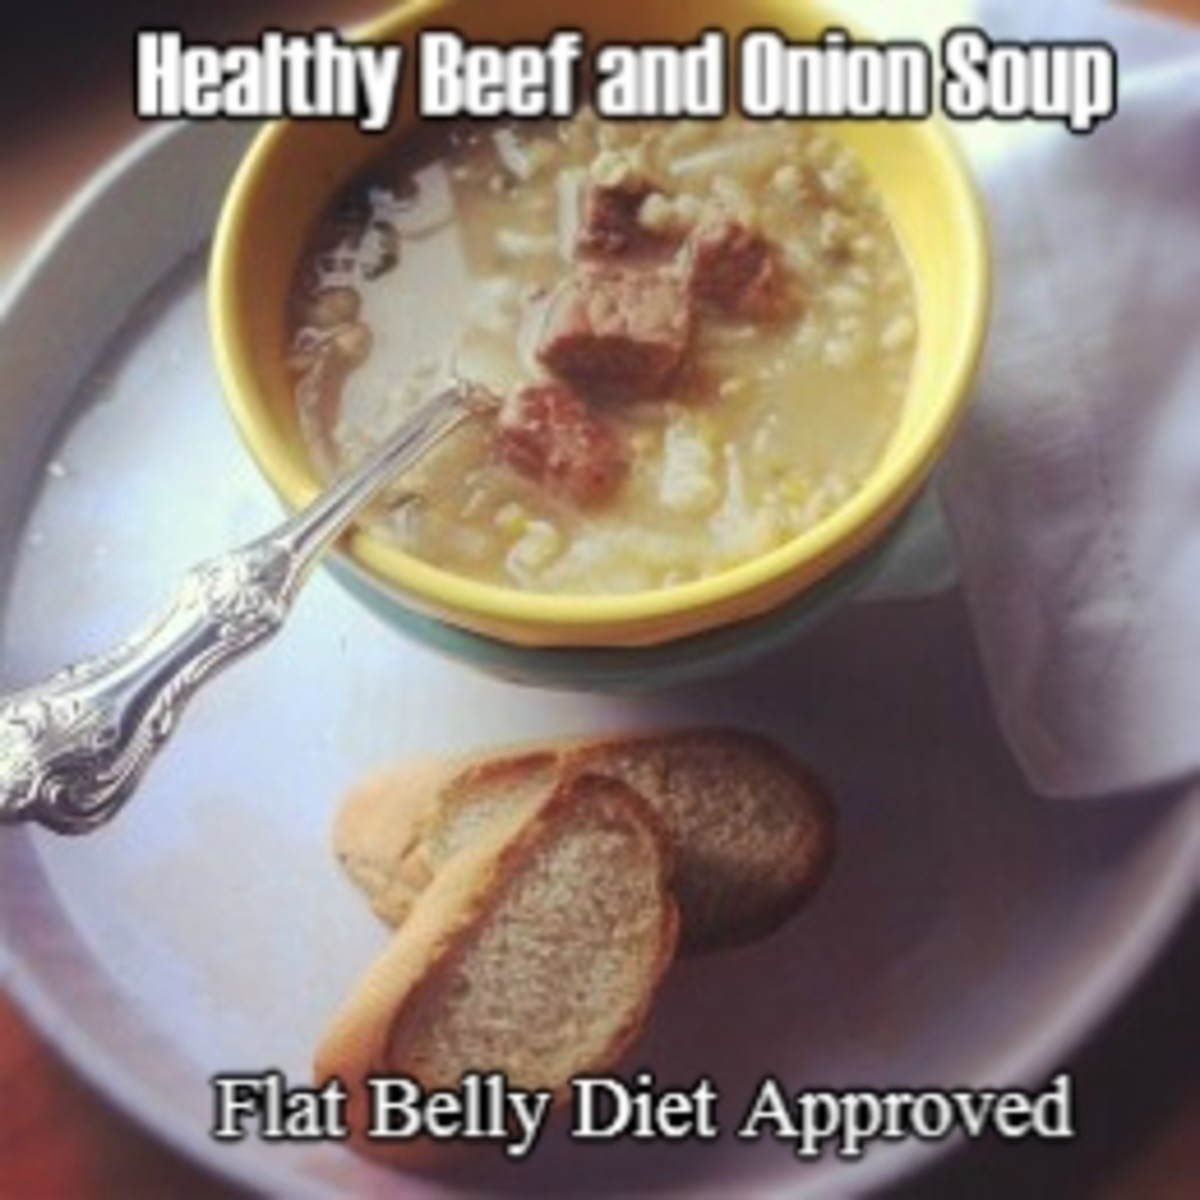 Healthy Beef and Onion Soup Recipe (Flat Belly Diet Approved)